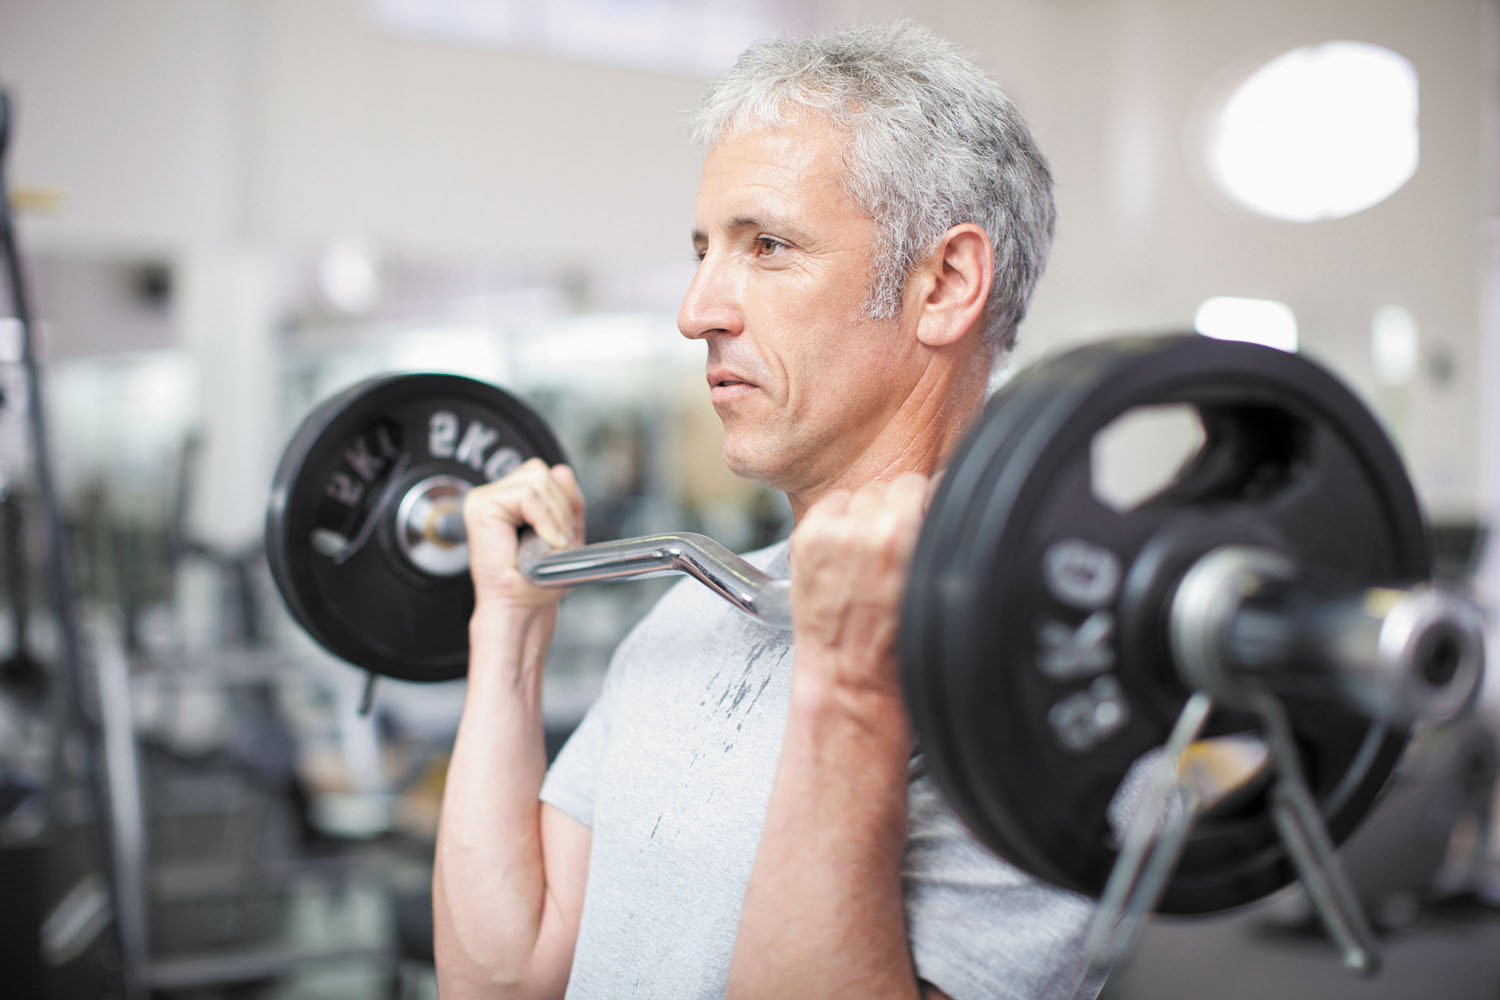 Weight training helps maintain muscle mass in overweight ...